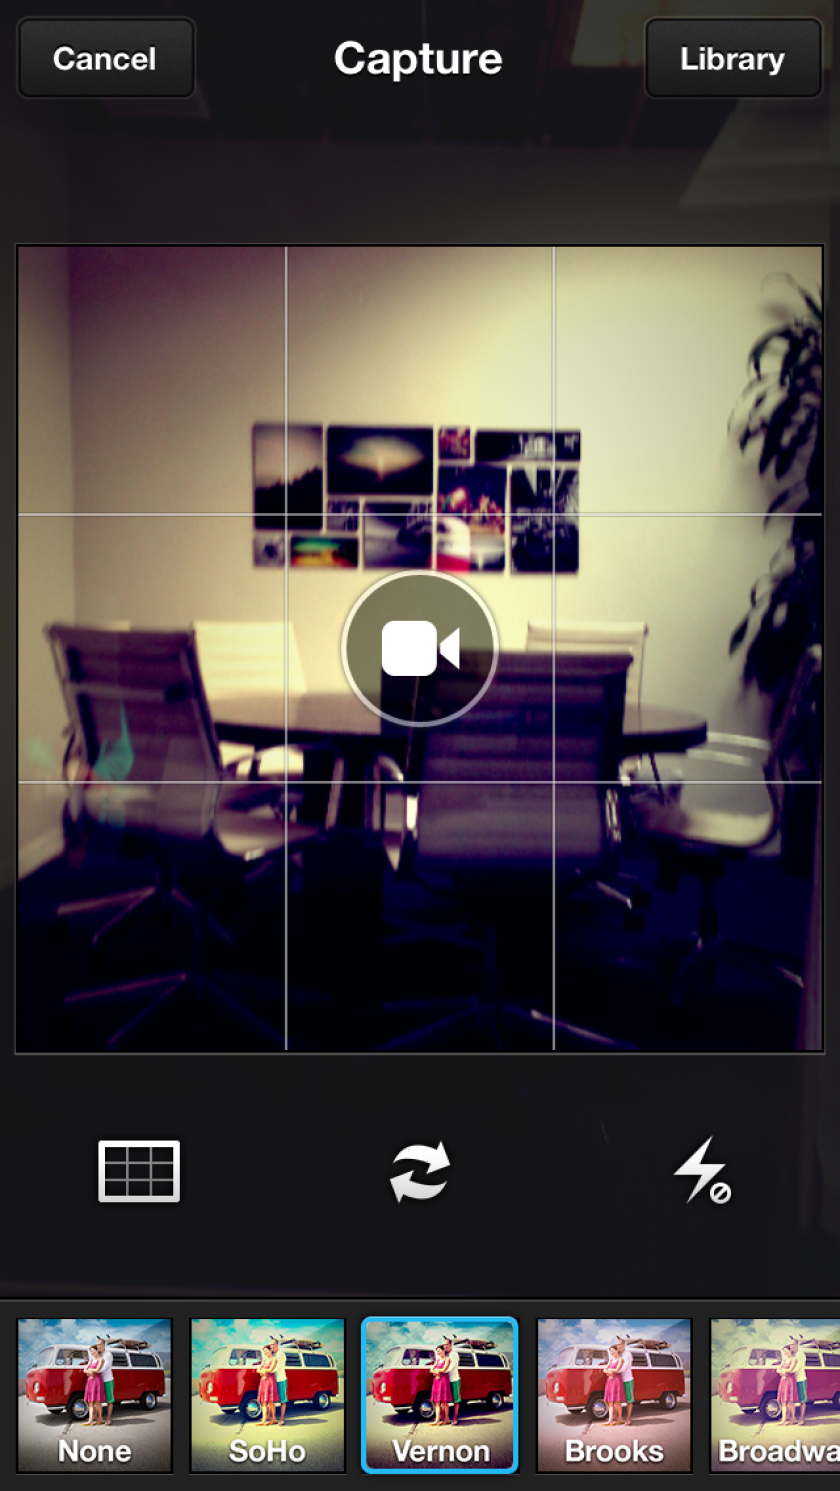 A screenshot from the latest version of Viddy, which has undergone a major redesign.